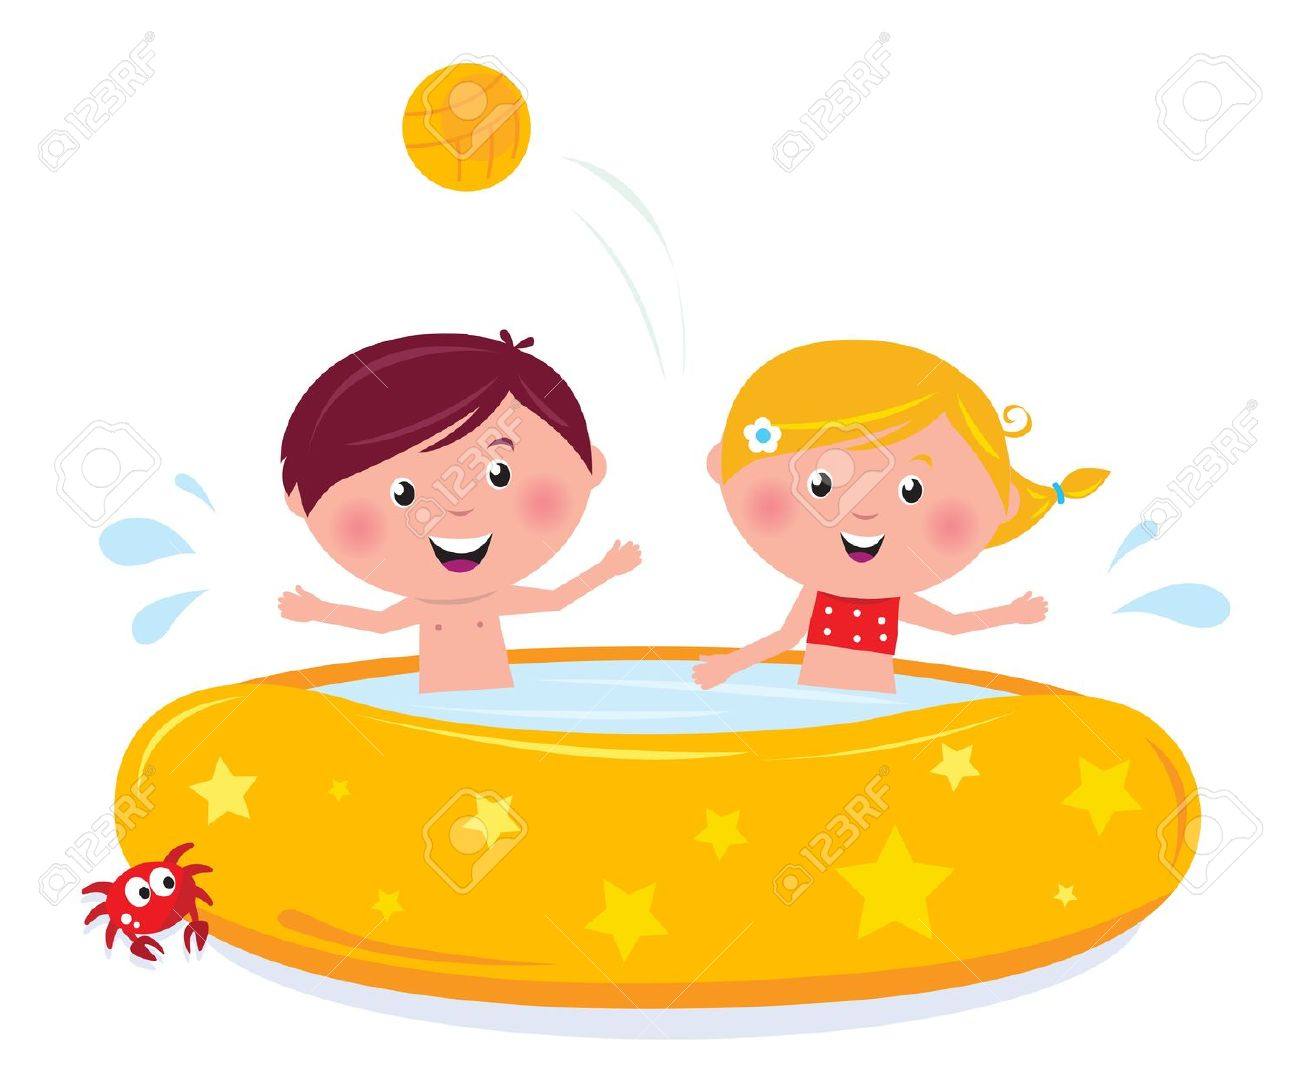 Happy Smiling Kids In Swimming Pool, Summer Illustration Cartoon.